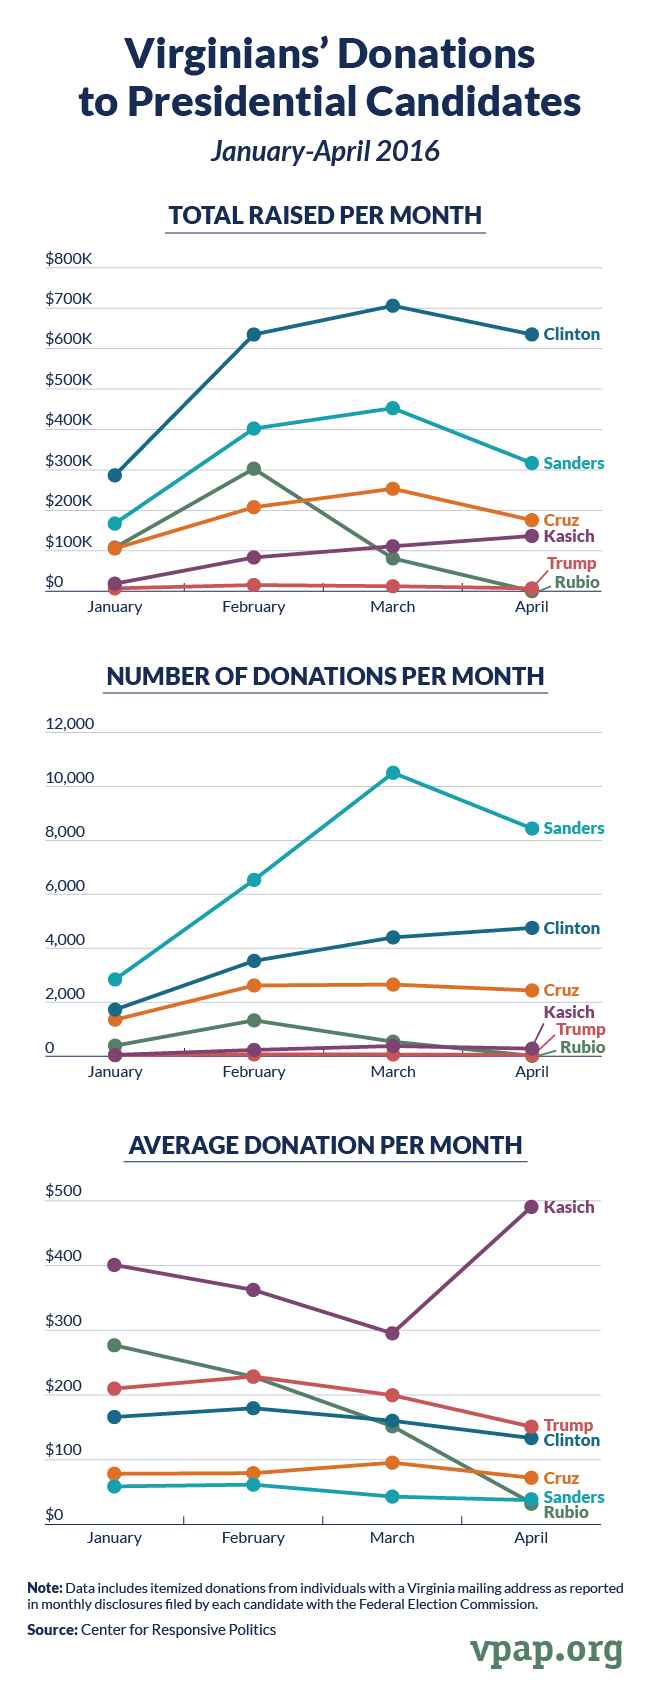 Virginians' Donations to Presidential Candidates, January-April